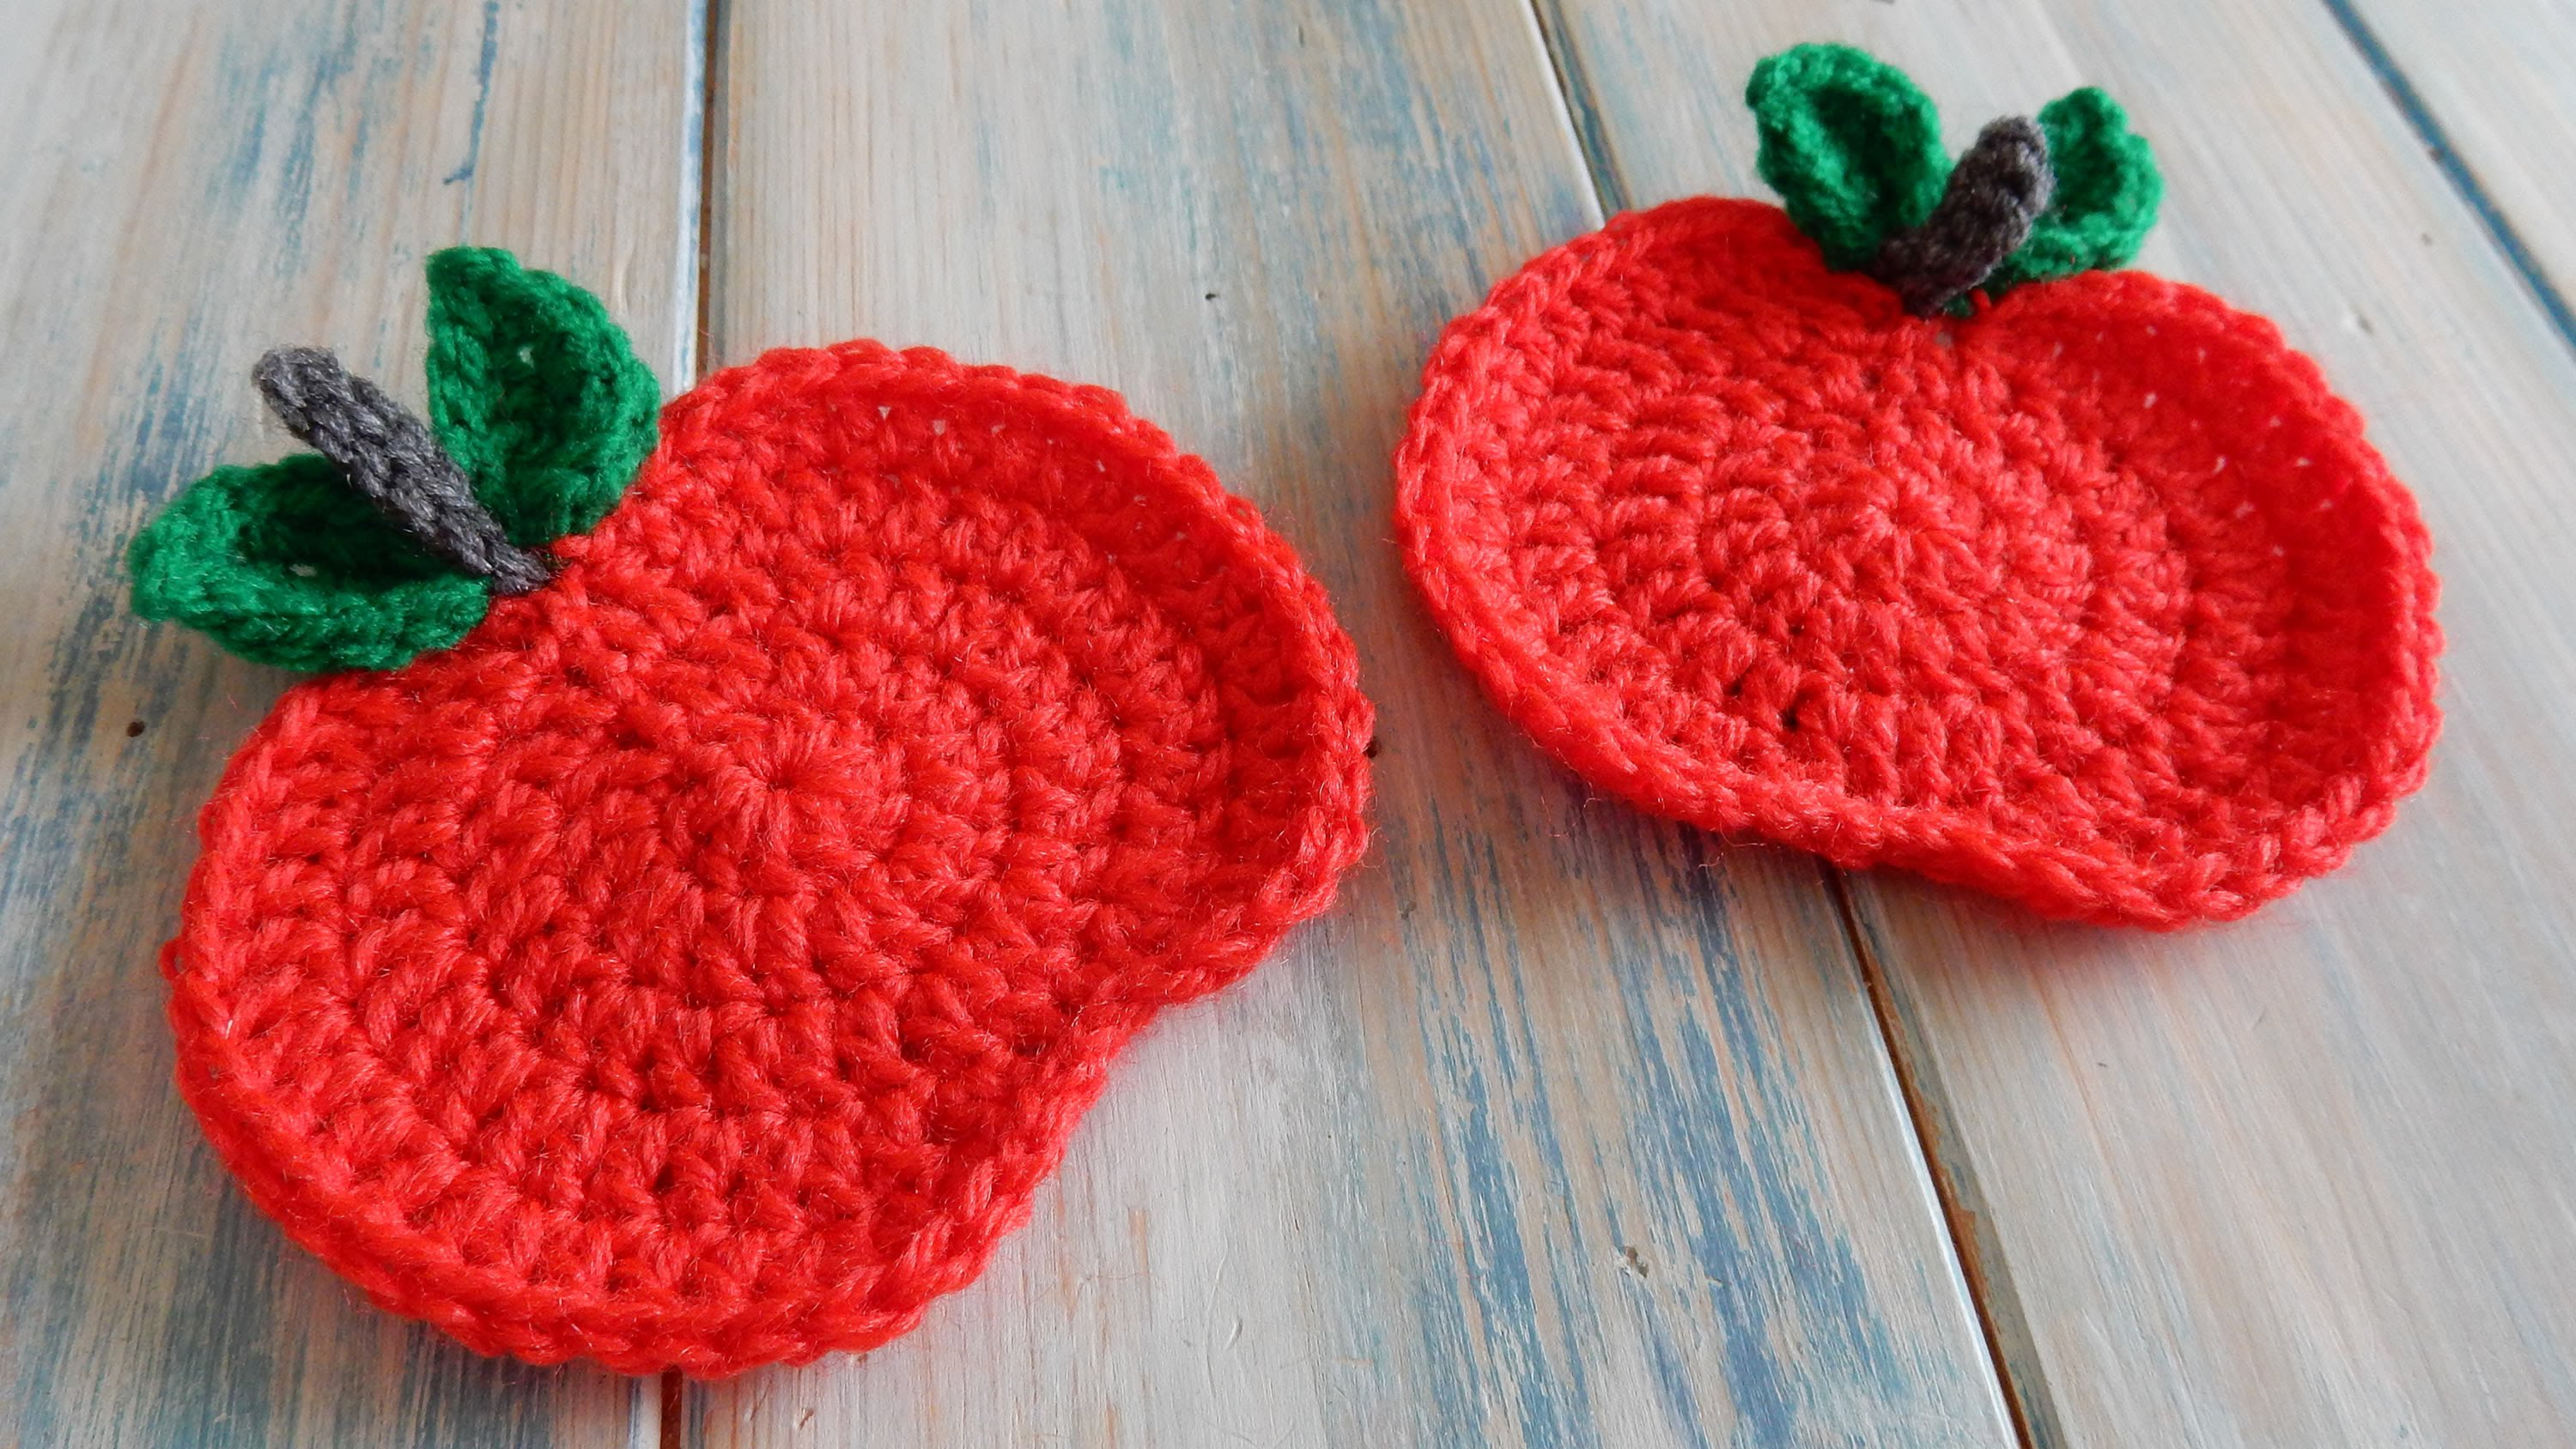 59 Free Crochet Potholder Patterns Guide Patterns